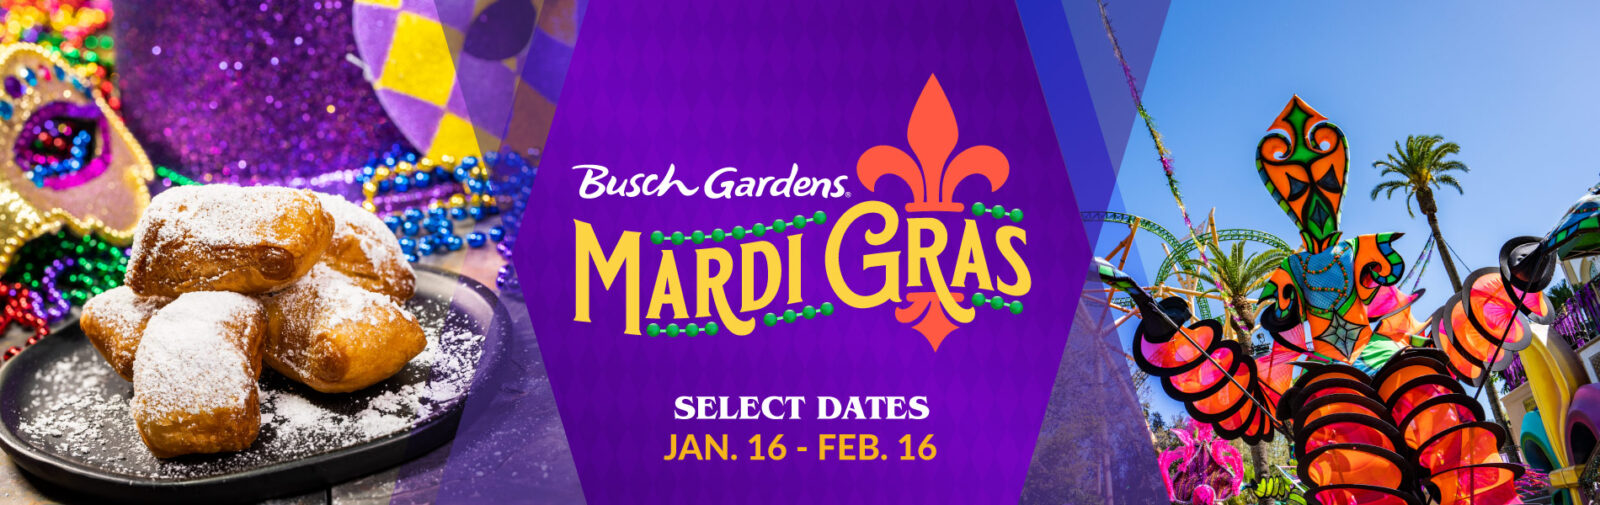 Busch Gardens Tampa Mardi Gras 2021 On the Go in the Parks January 2021